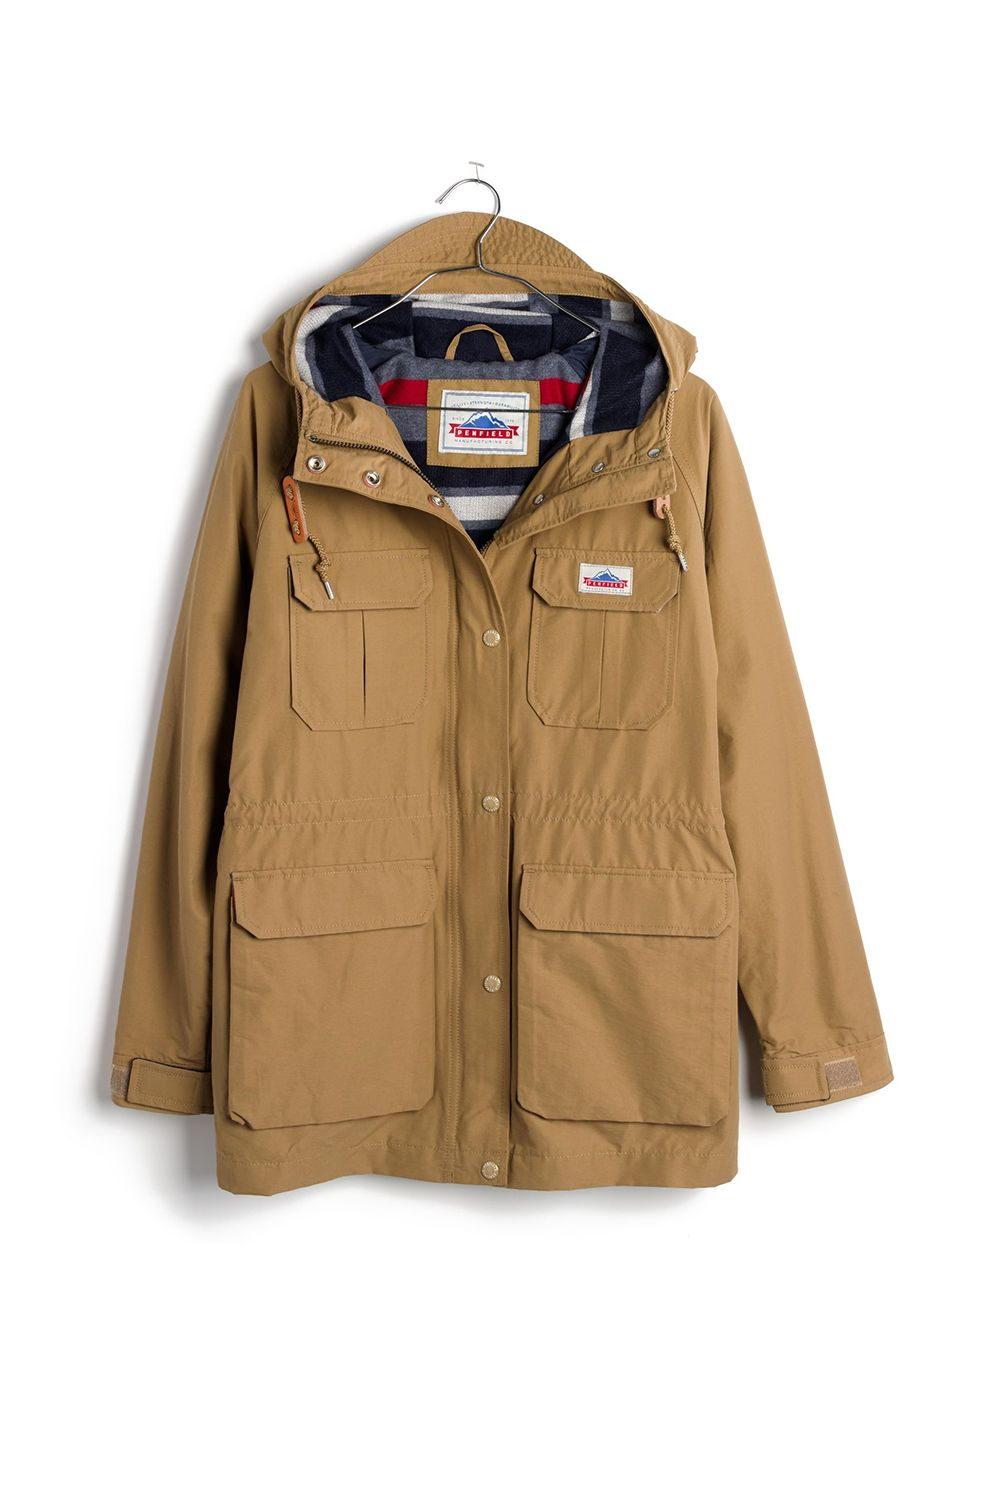 "<p>This Madewell collab with Penfield (a Massachusetts-based company that makes legit outdoor goodies) produced pretty much the perfect Parka: a heritage-inspired pick with fleece-lined pockets and a bold striped lining that looks good on and off a trail. </p><p><strong data-redactor-tag=""strong"" data-verified=""redactor"">Madewell x Penfield Kasson Parka in Tan, $200; </strong><a href=""https://www.madewell.com/madewell_category/JACKETSANDOUTERWEAR/Jackets/PRDOVR~F5972/F5972.jsp"" target=""_blank"" data-tracking-id=""recirc-text-link""><strong data-redactor-tag=""strong"" data-verified=""redactor"">madewell.com</strong></a></p>"